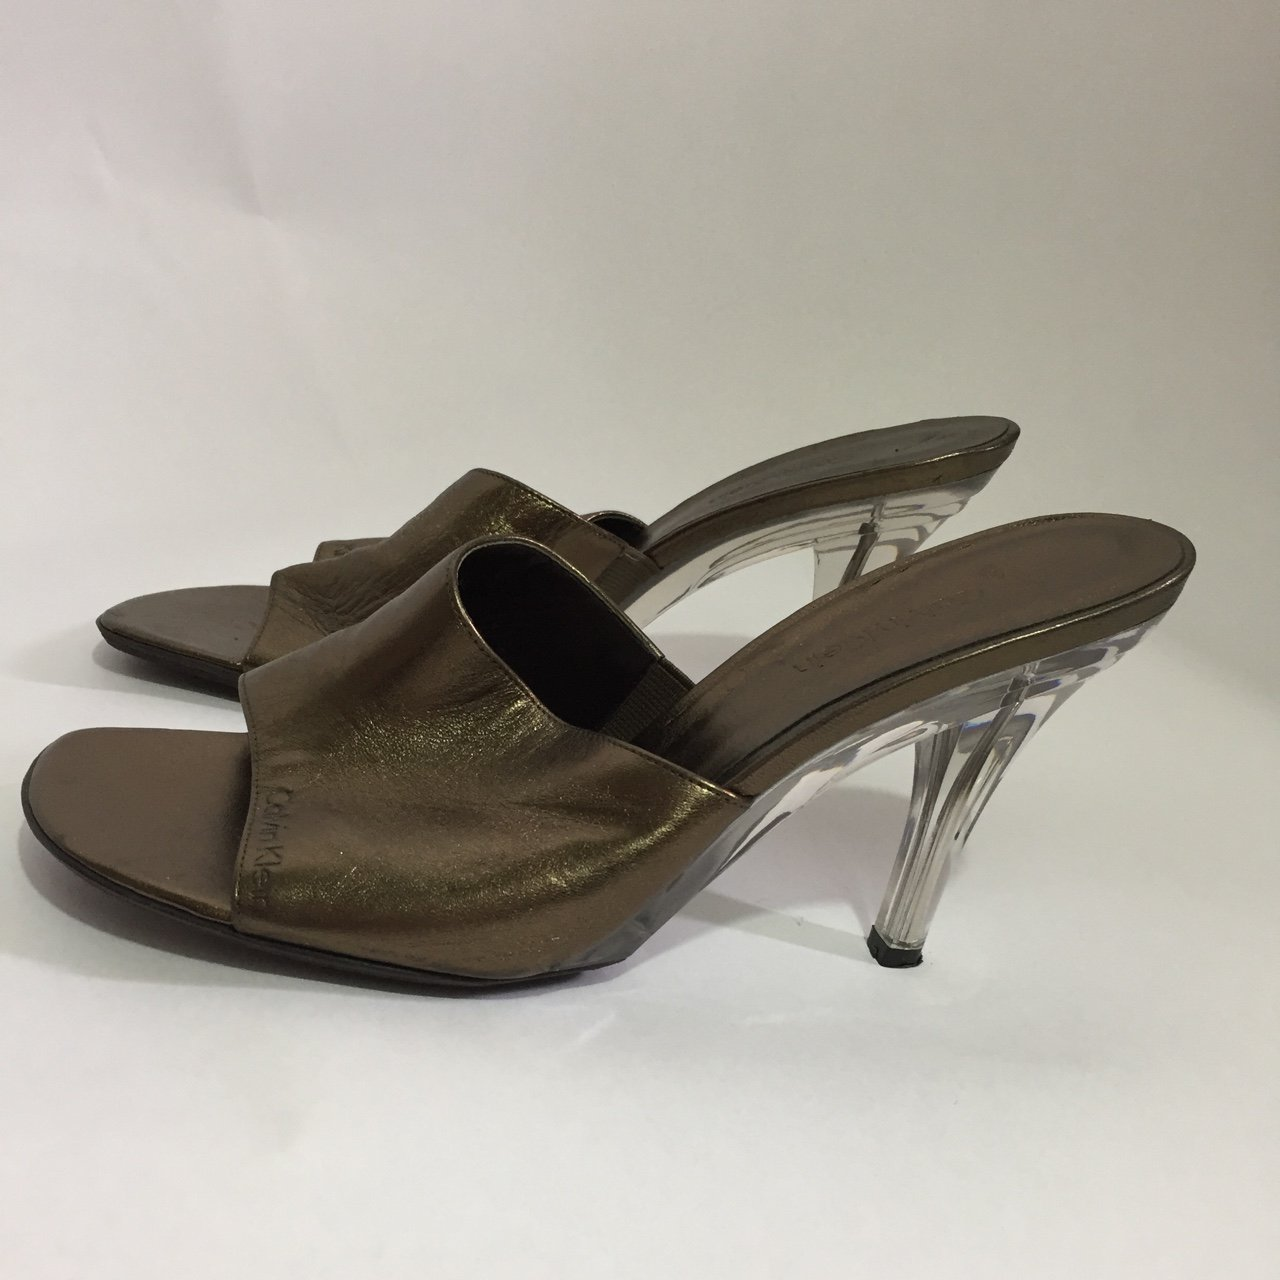 78d39399b6 @nataliearellano. last year. Santa Ana, United States. Gold Calvin Klein  shoes with clear heel. Has minor scratches ...